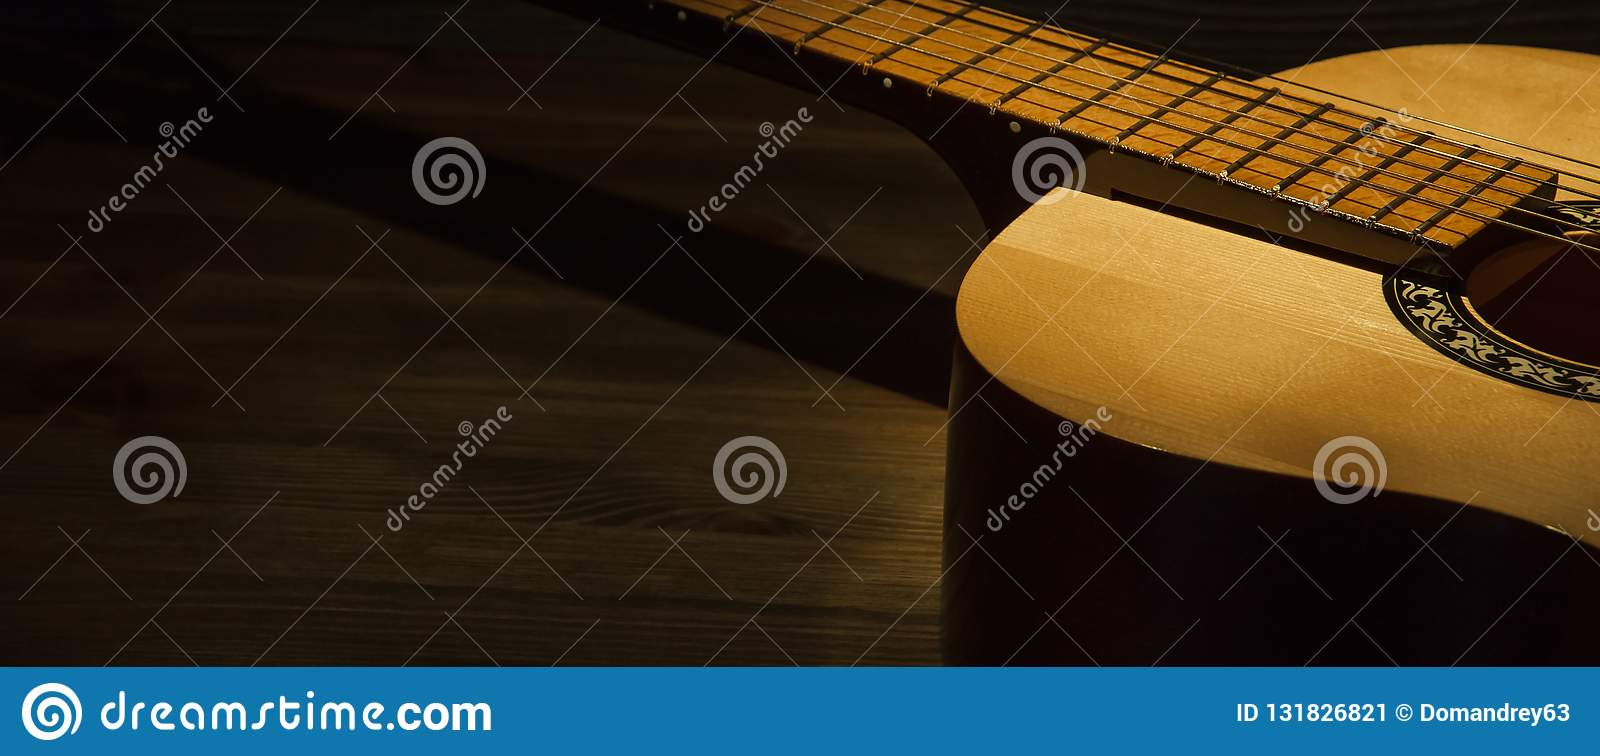 Acoustic guitar on a wooden table lit by a ray of light. Side view